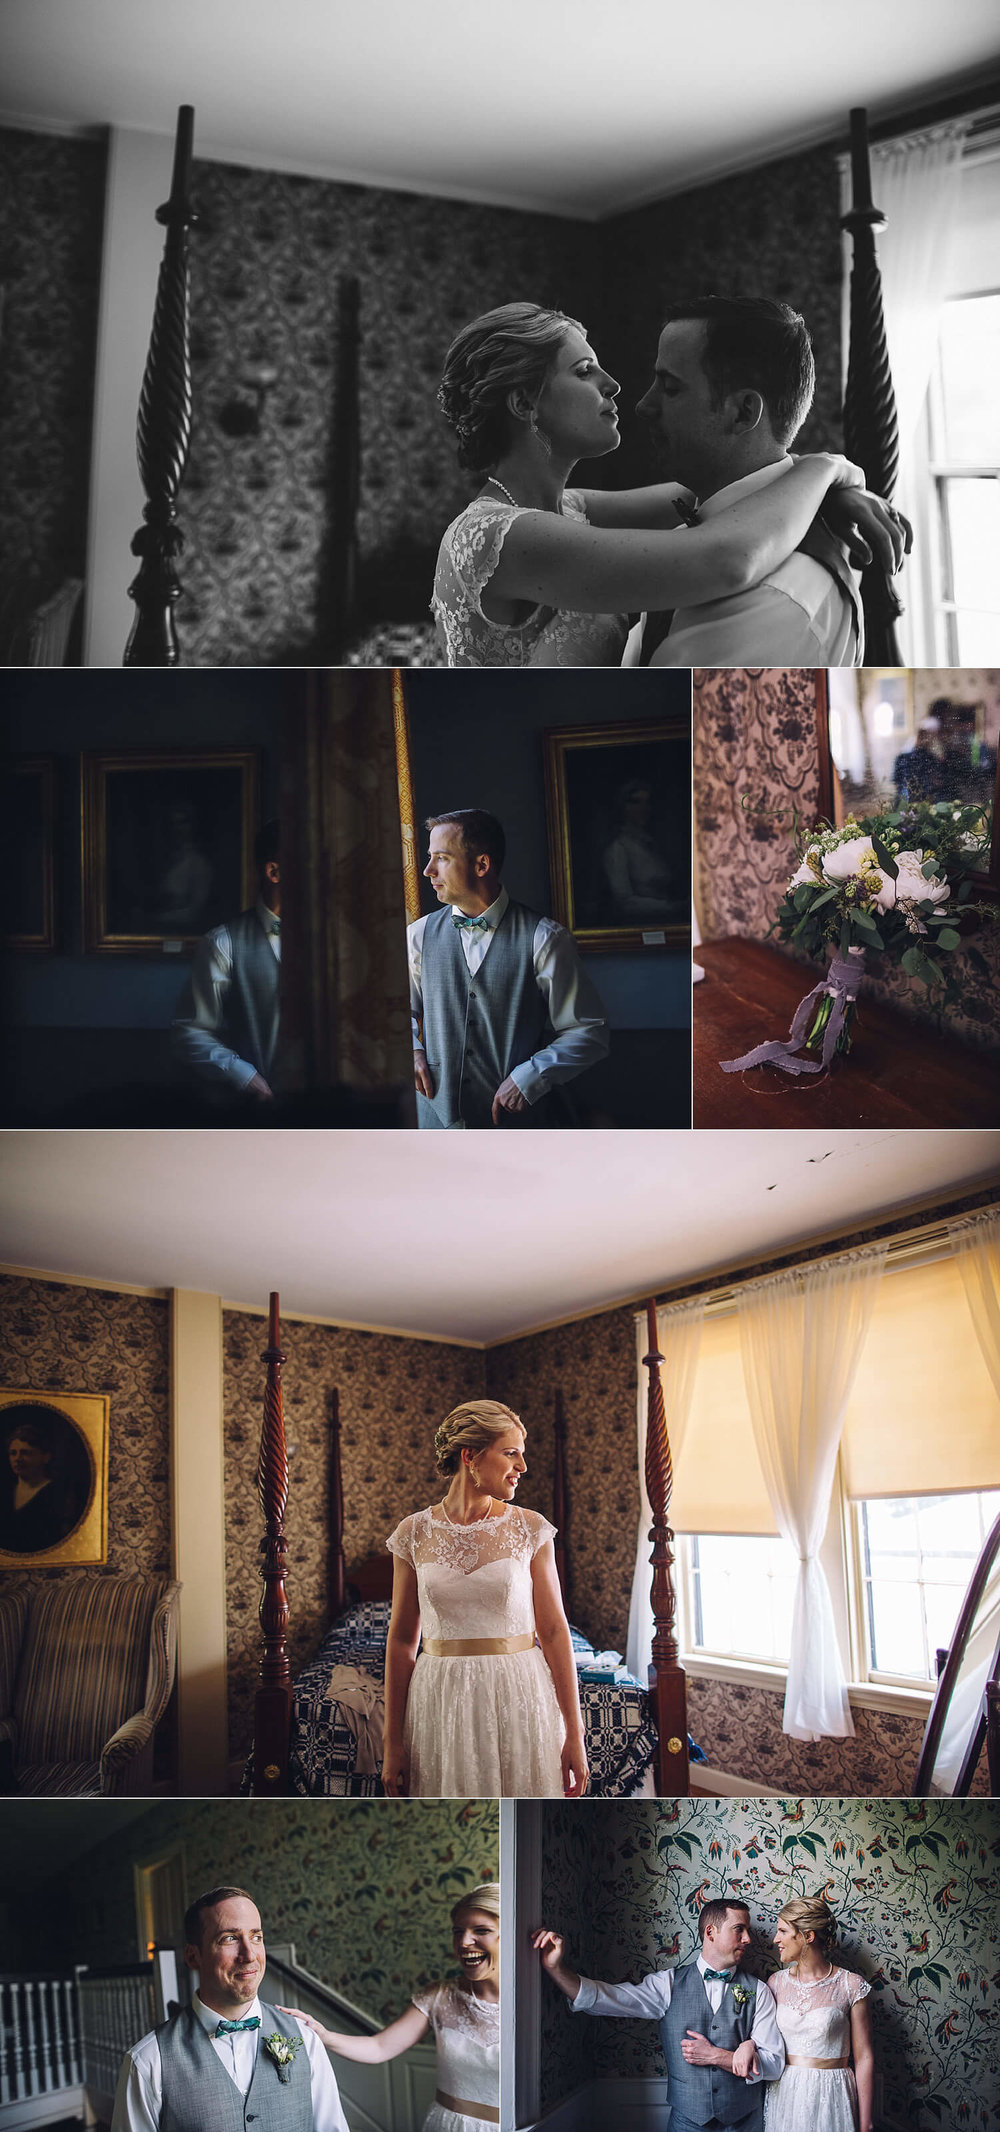 Click image to view Loring house wedding!